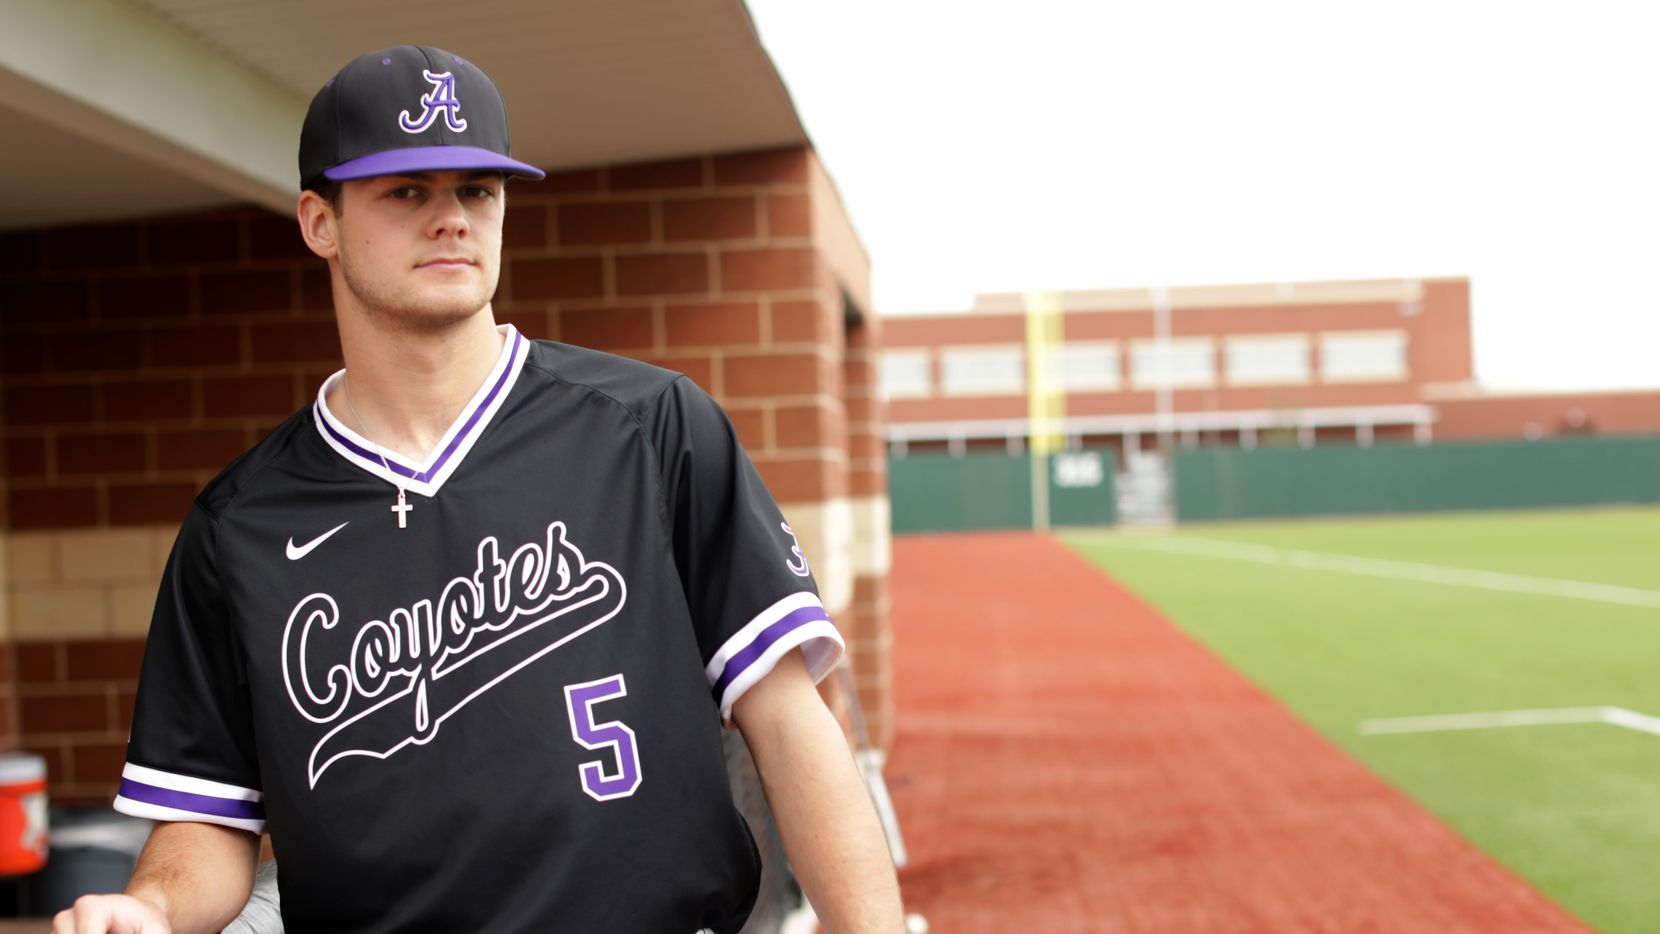 Rawley Hector poses for a photograph at Anna High School in Anna, TX, on May 4, 2021.